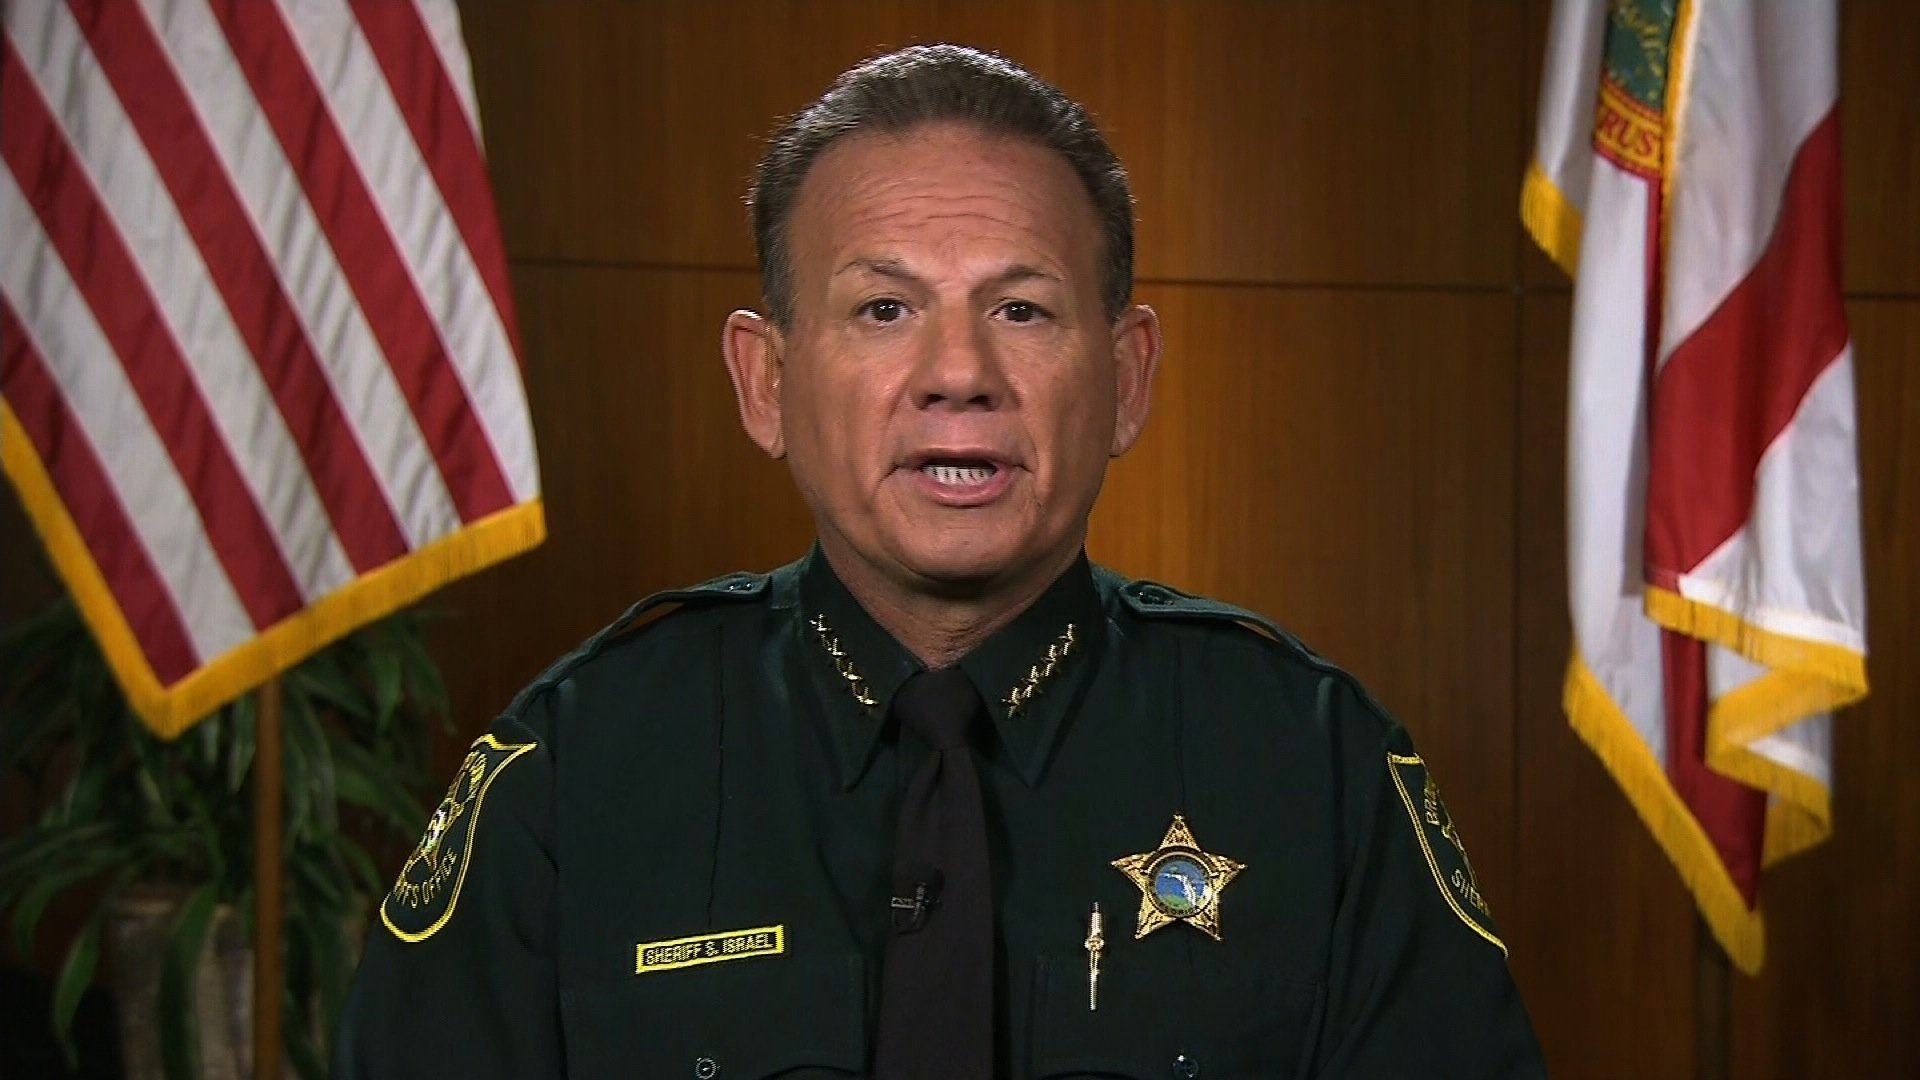 Officers 'stunned and upset' over Broward deputies